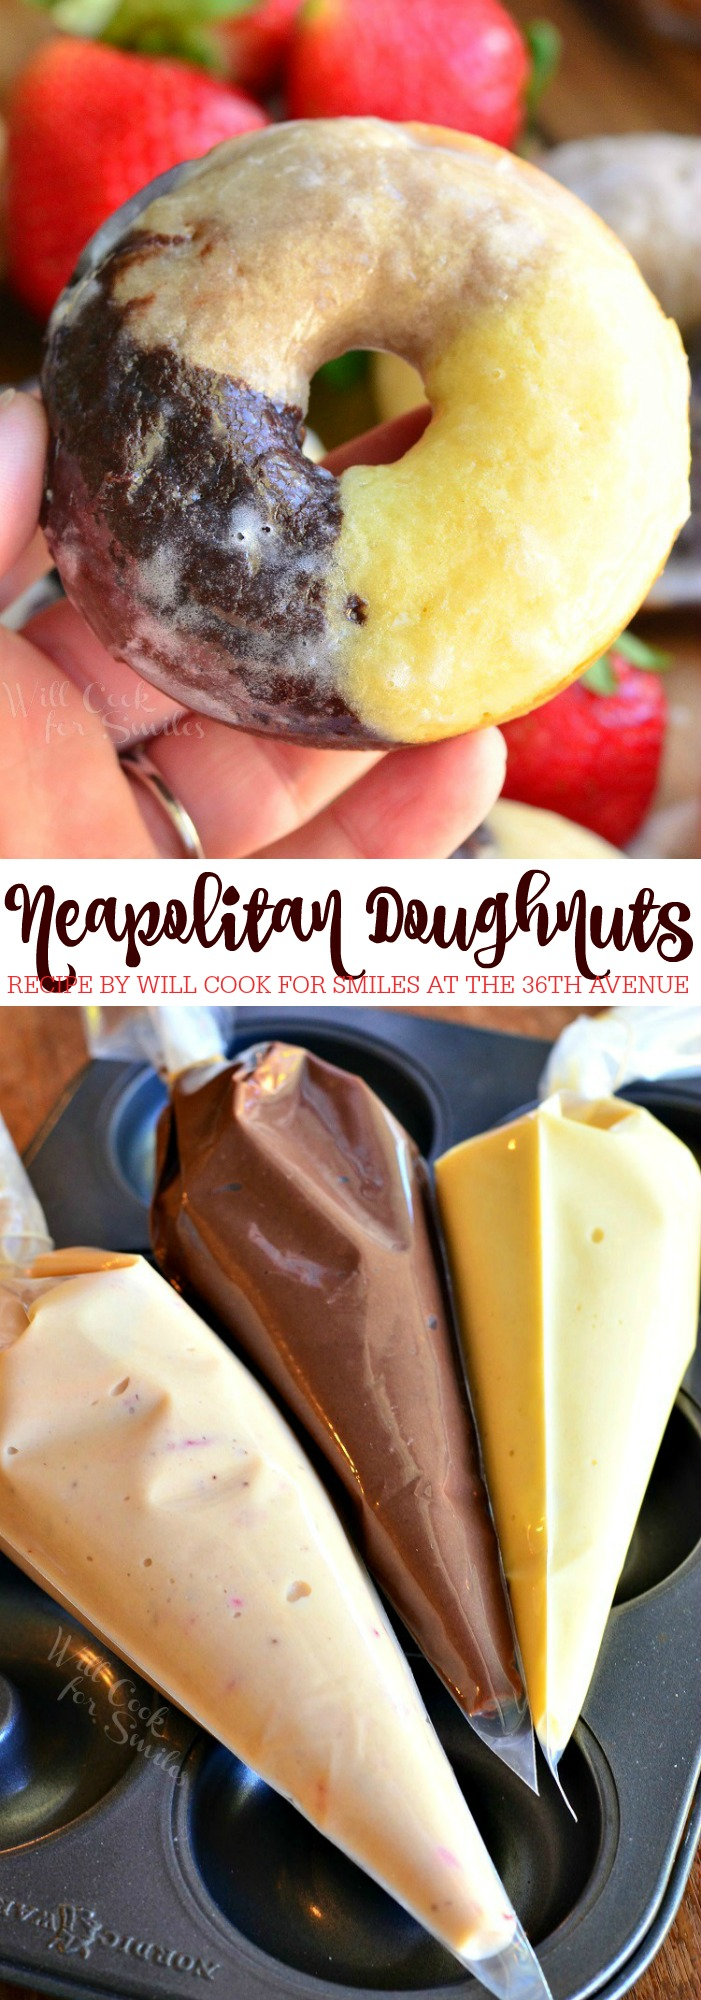 Neapolitan Doughnuts - Soft, moist, cake-like baked doughnuts inspired by the Neapolitan ice cream and made with three layers of different flavor in one. These doughnuts have chocolate, vanilla and strawberry flavors in one doughnut and dipped in glaze as an extra sweet touch.